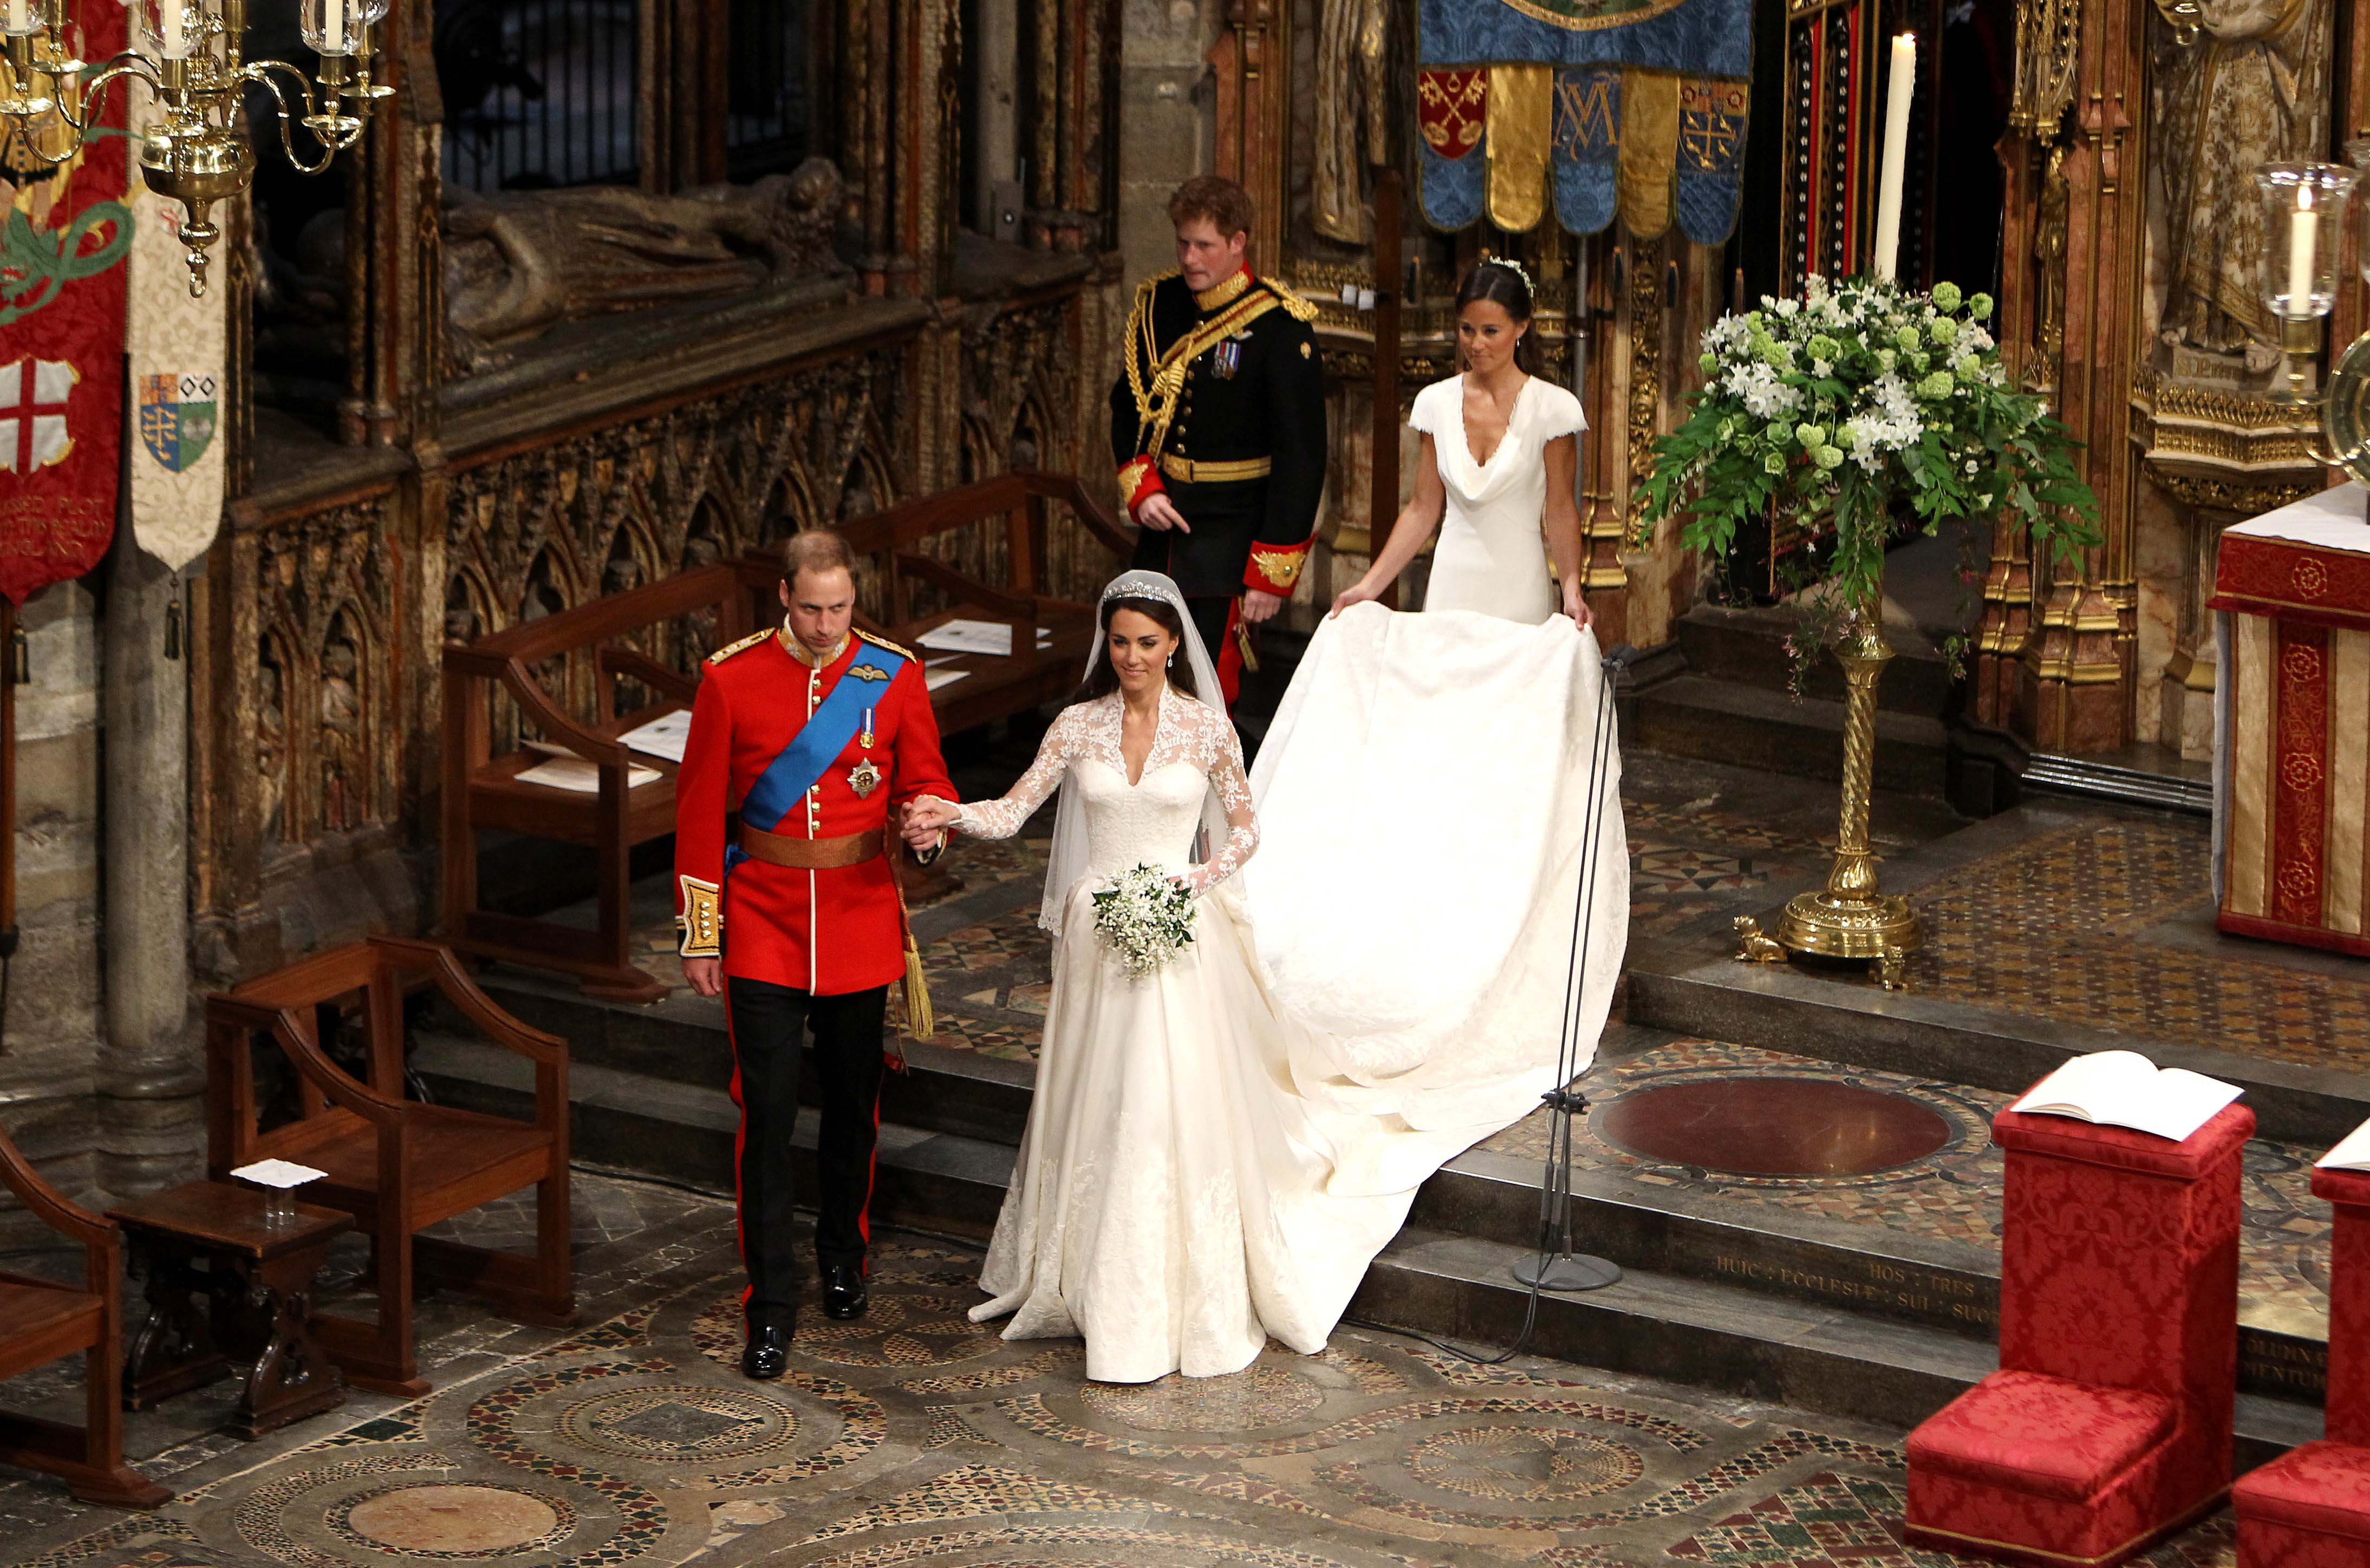 Image Result For A Royal Wedding